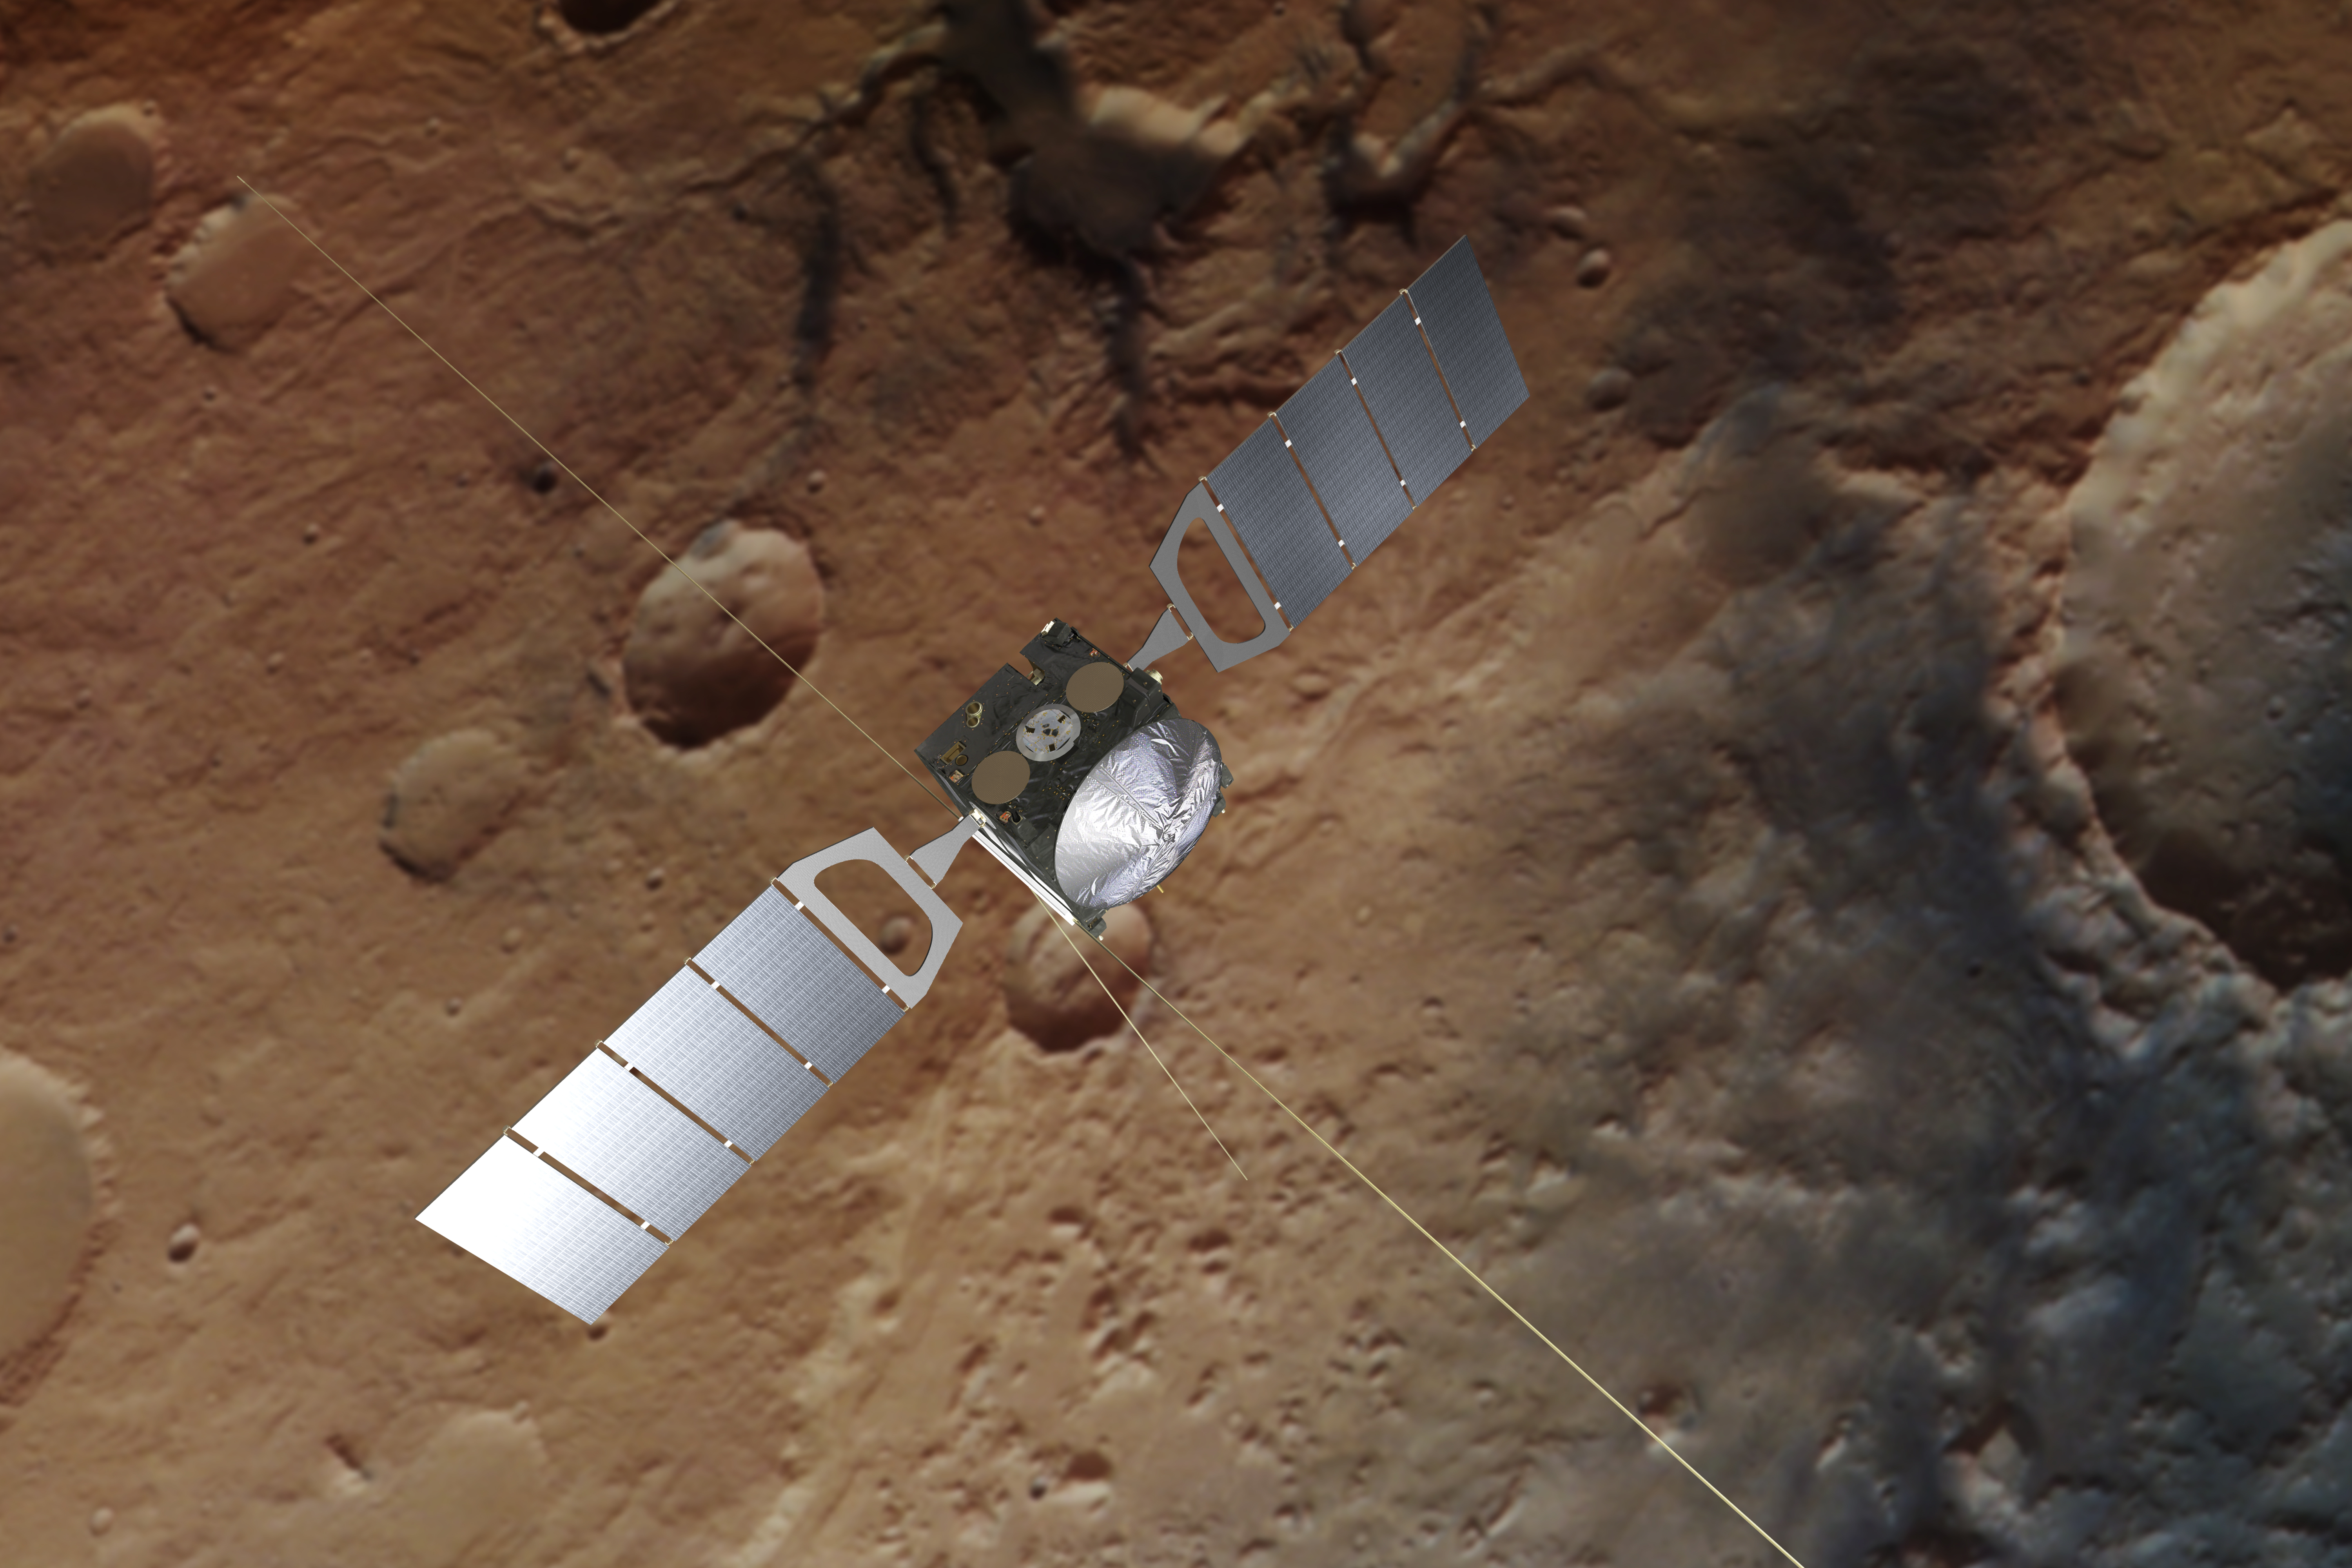 Mars Express is one of four ESA missions that have been put on hold as a result of the coronavirus